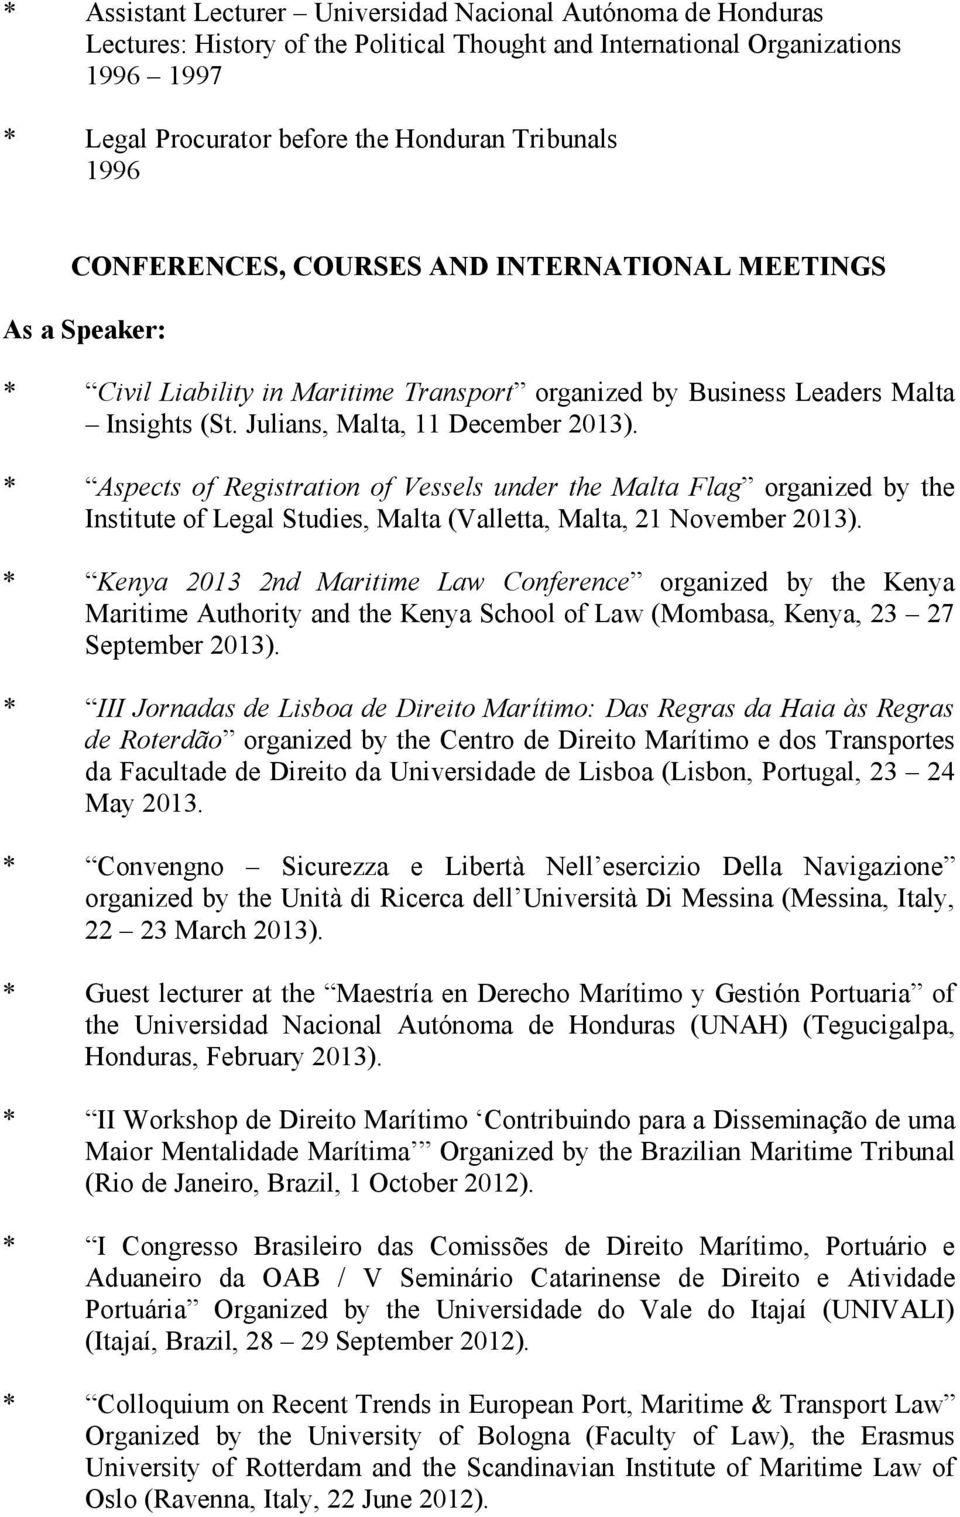 * Aspects of Registration of Vessels under the Malta Flag organized by the Institute of Legal Studies, Malta (Valletta, Malta, 21 November 2013).